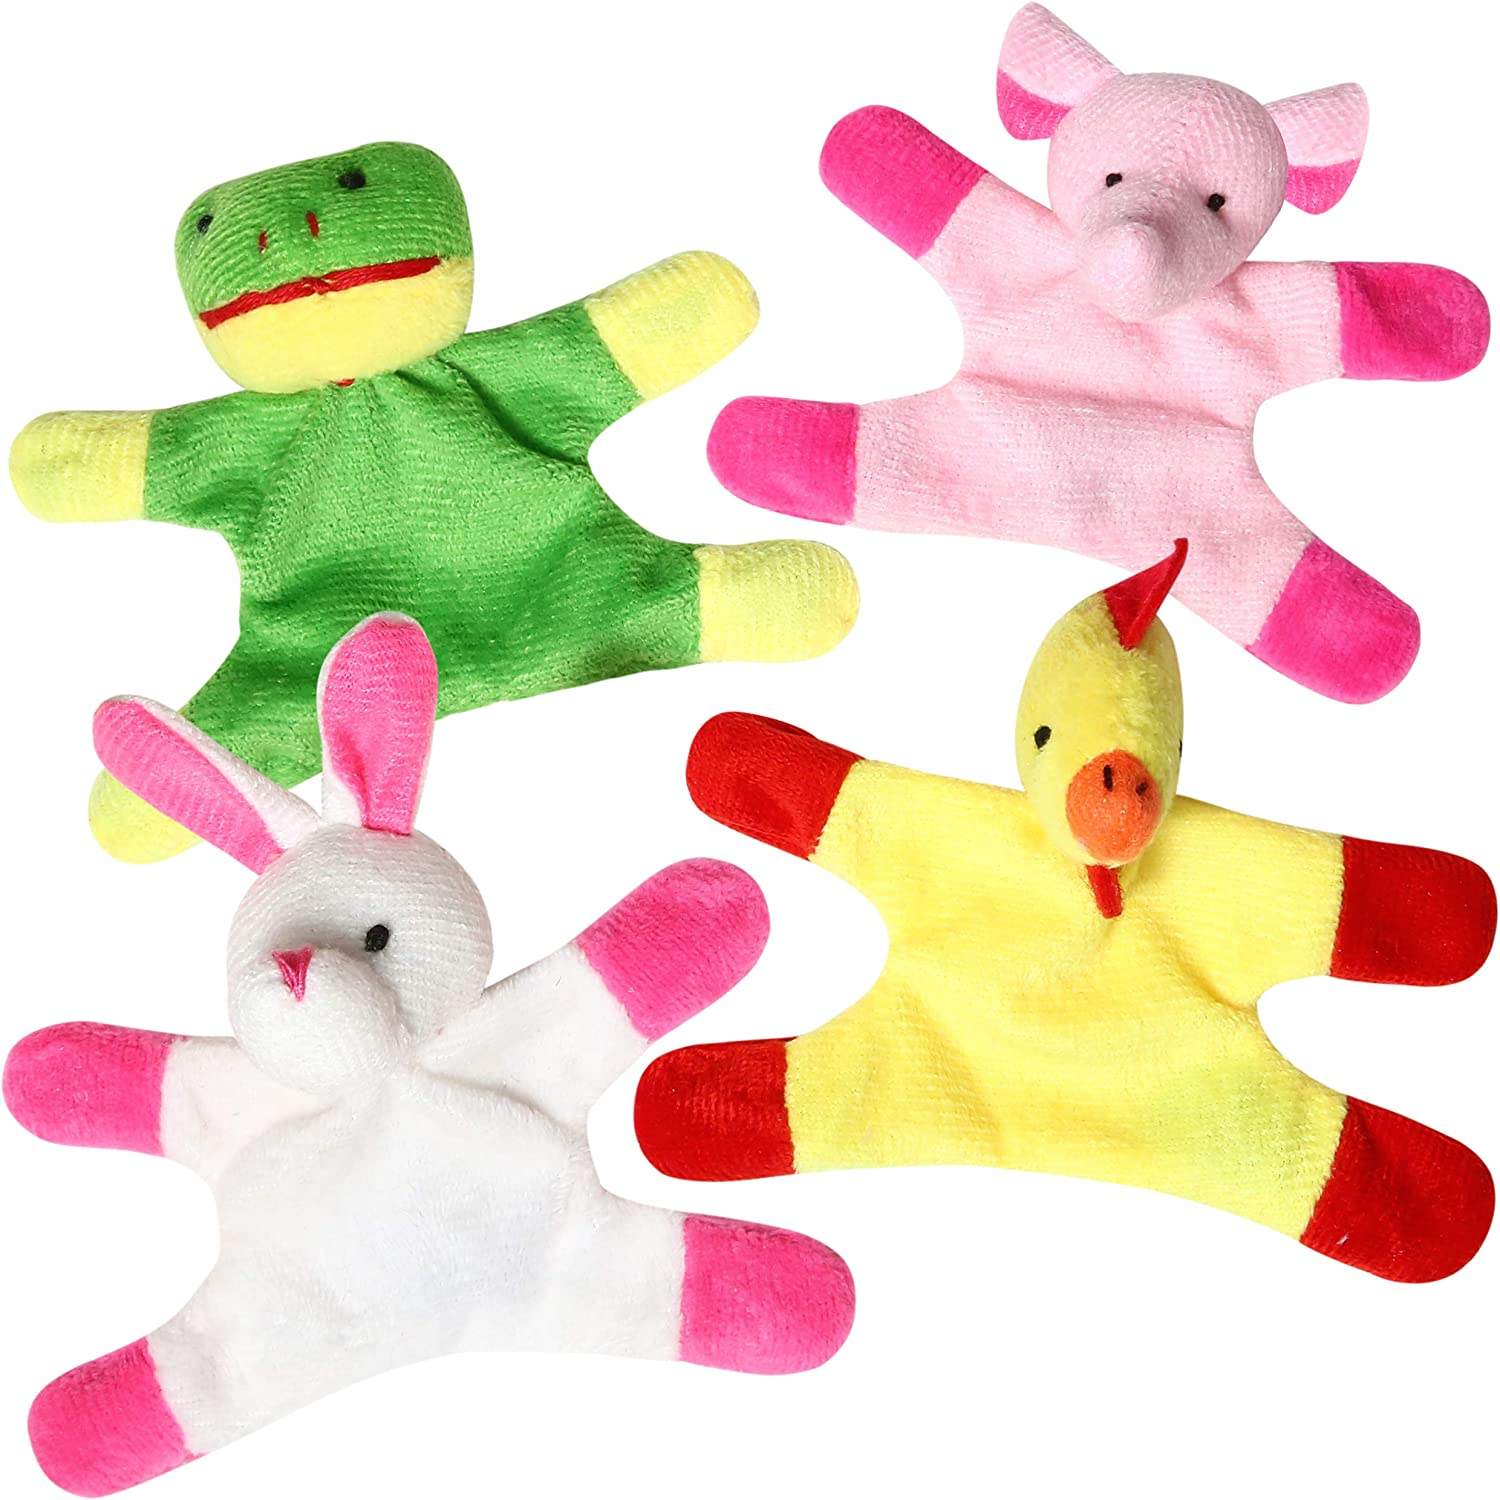 Animal Magnets Toy Set for Refrigerator, Fridge and Board Magnets, Plush Animal Toys (4-Piece Set)